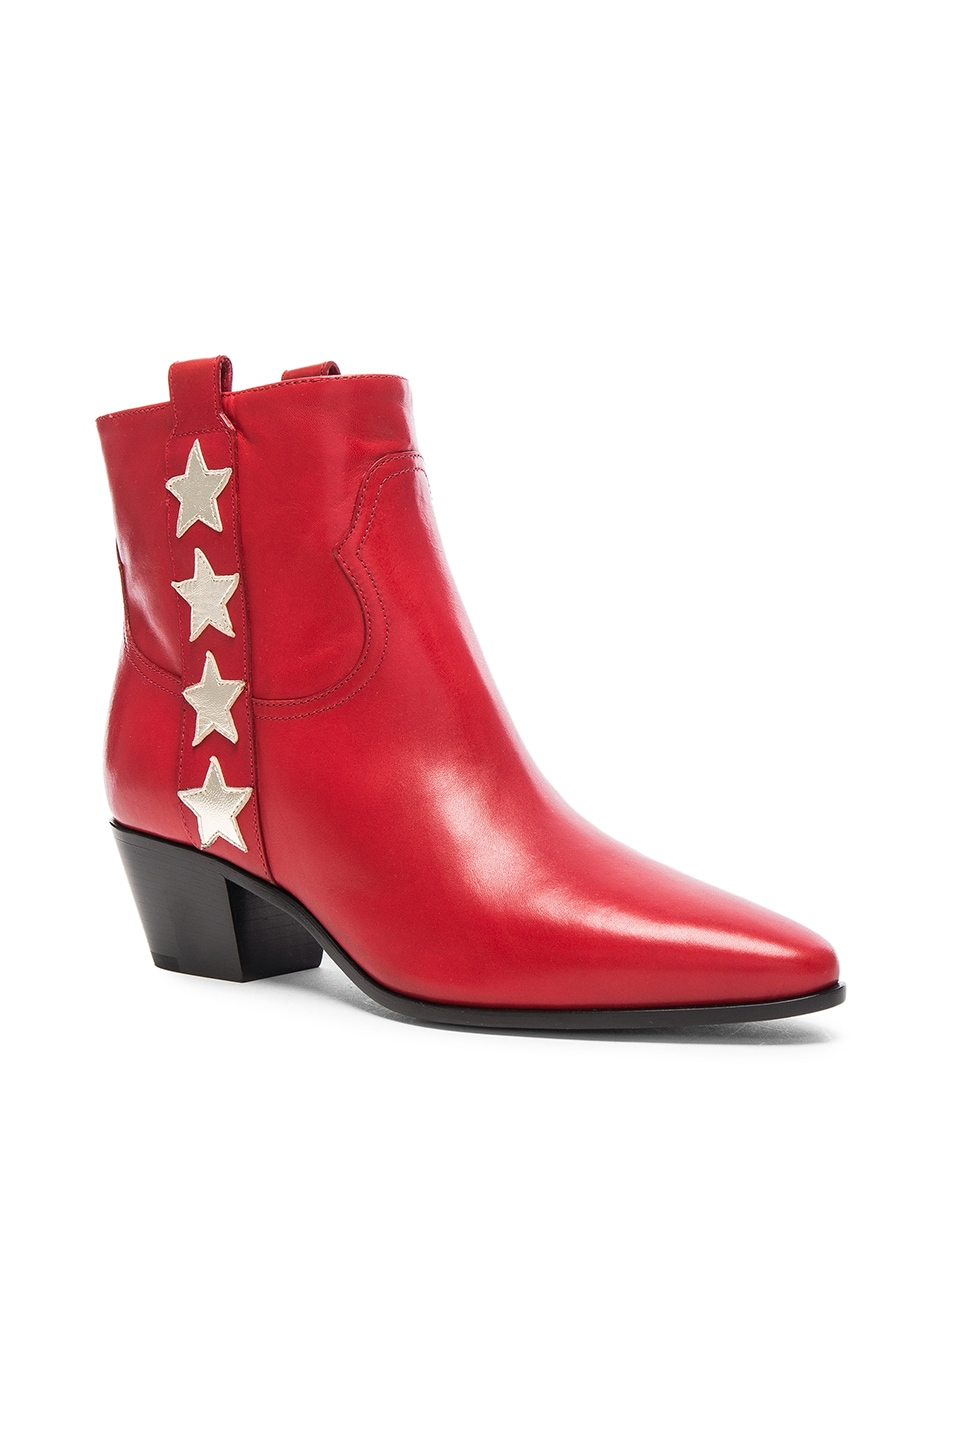 Image 2 of Saint Laurent Rock Leather Boots in Red & Pale Gold